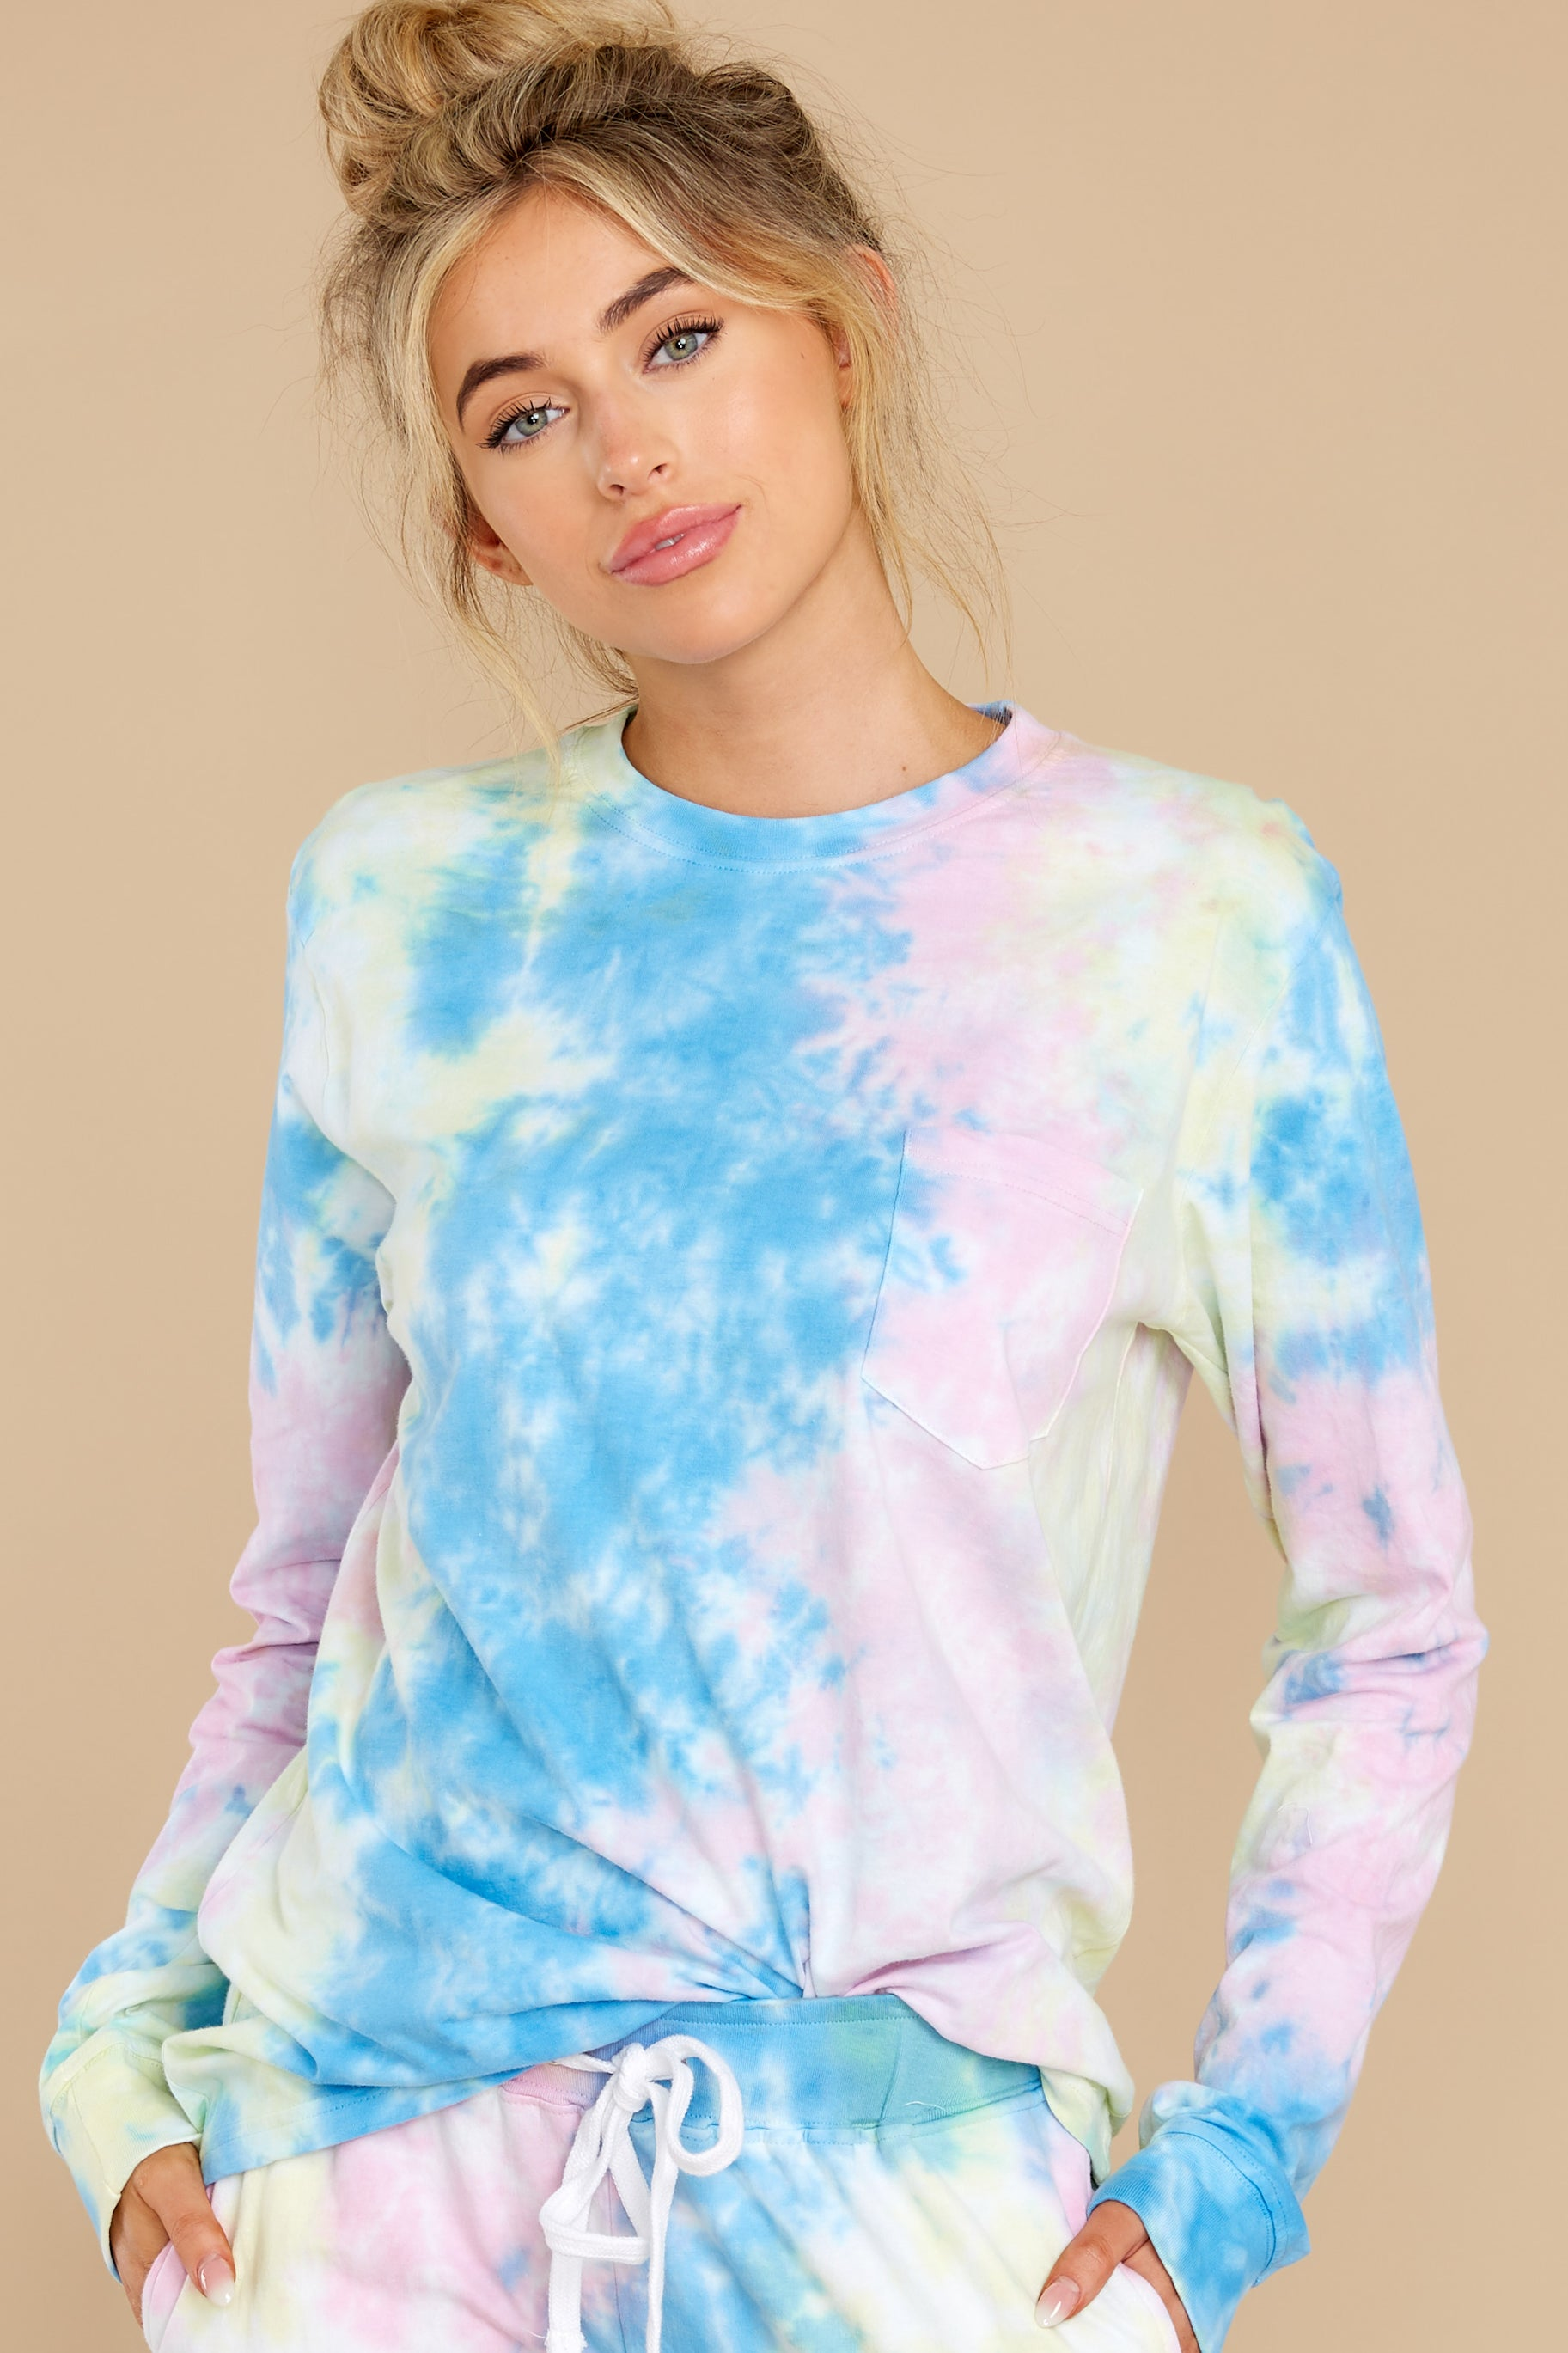 1 Summer In Sav Pastel Pink Tie Dye Top at reddress.com